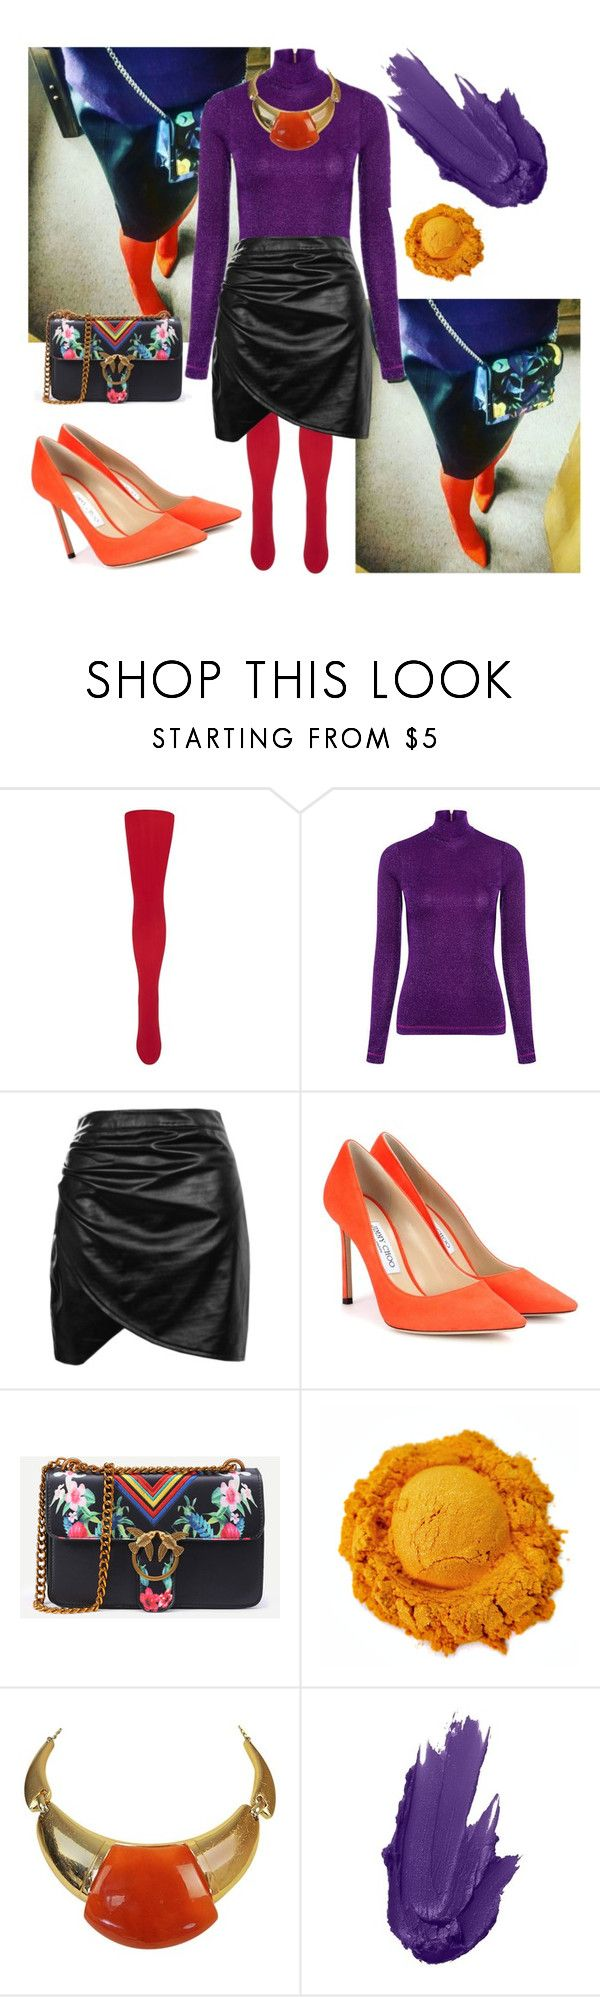 """Untitled #2139"" by jo-fashion-stylist ❤ liked on Polyvore featuring Le Bourget, Karen Walker, Boohoo, Jimmy Choo, WithChic and Lanvin"